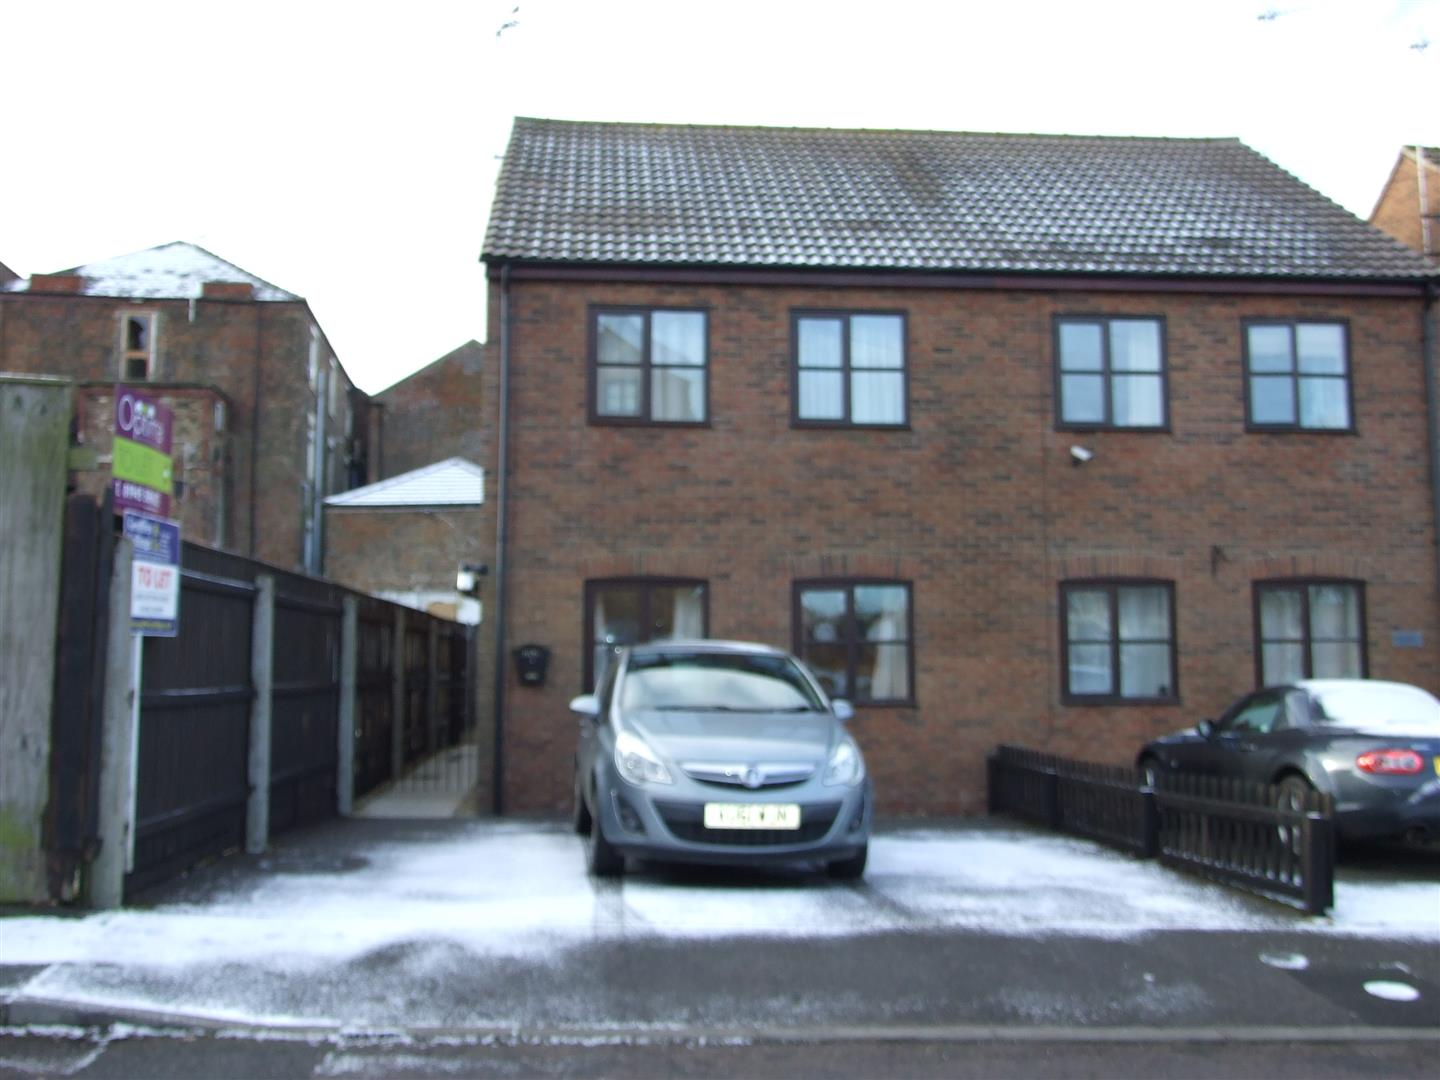 3 bed house to rent in Sutton Bridge Spalding, PE12 9UF - Property Image 1